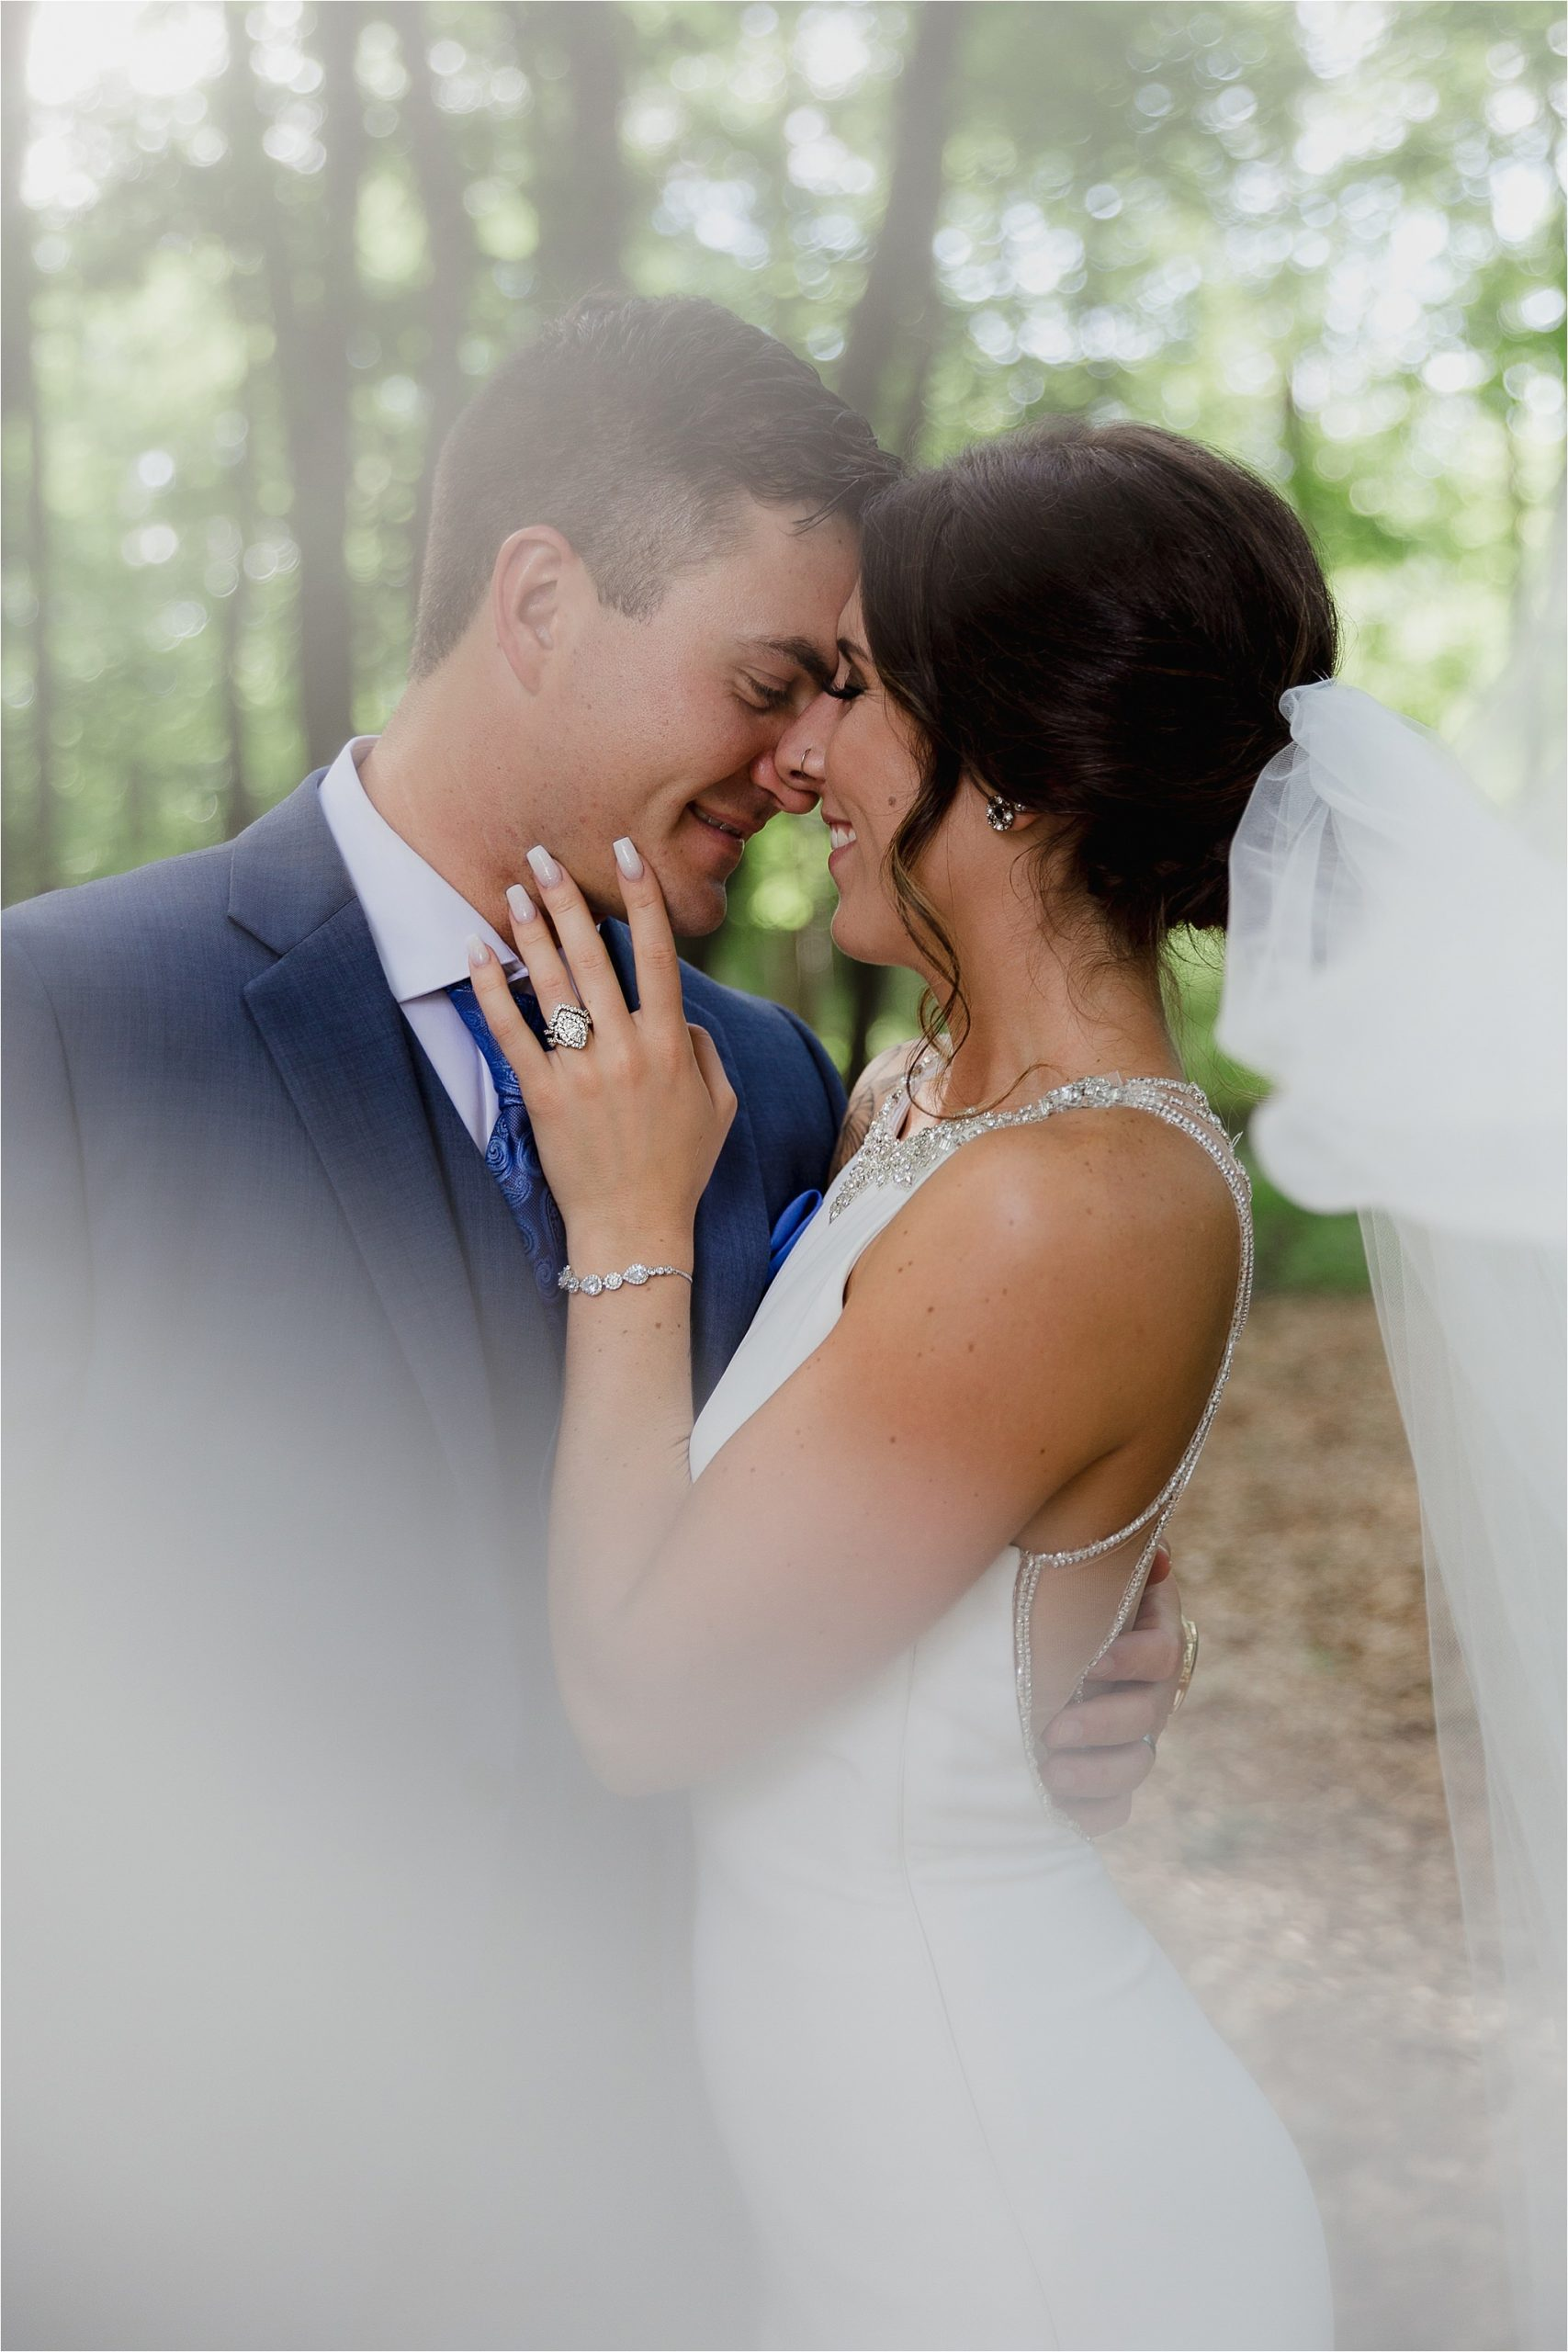 Sonia V Photography, The Clearing ceremony wedding venue, bride and groom portraits